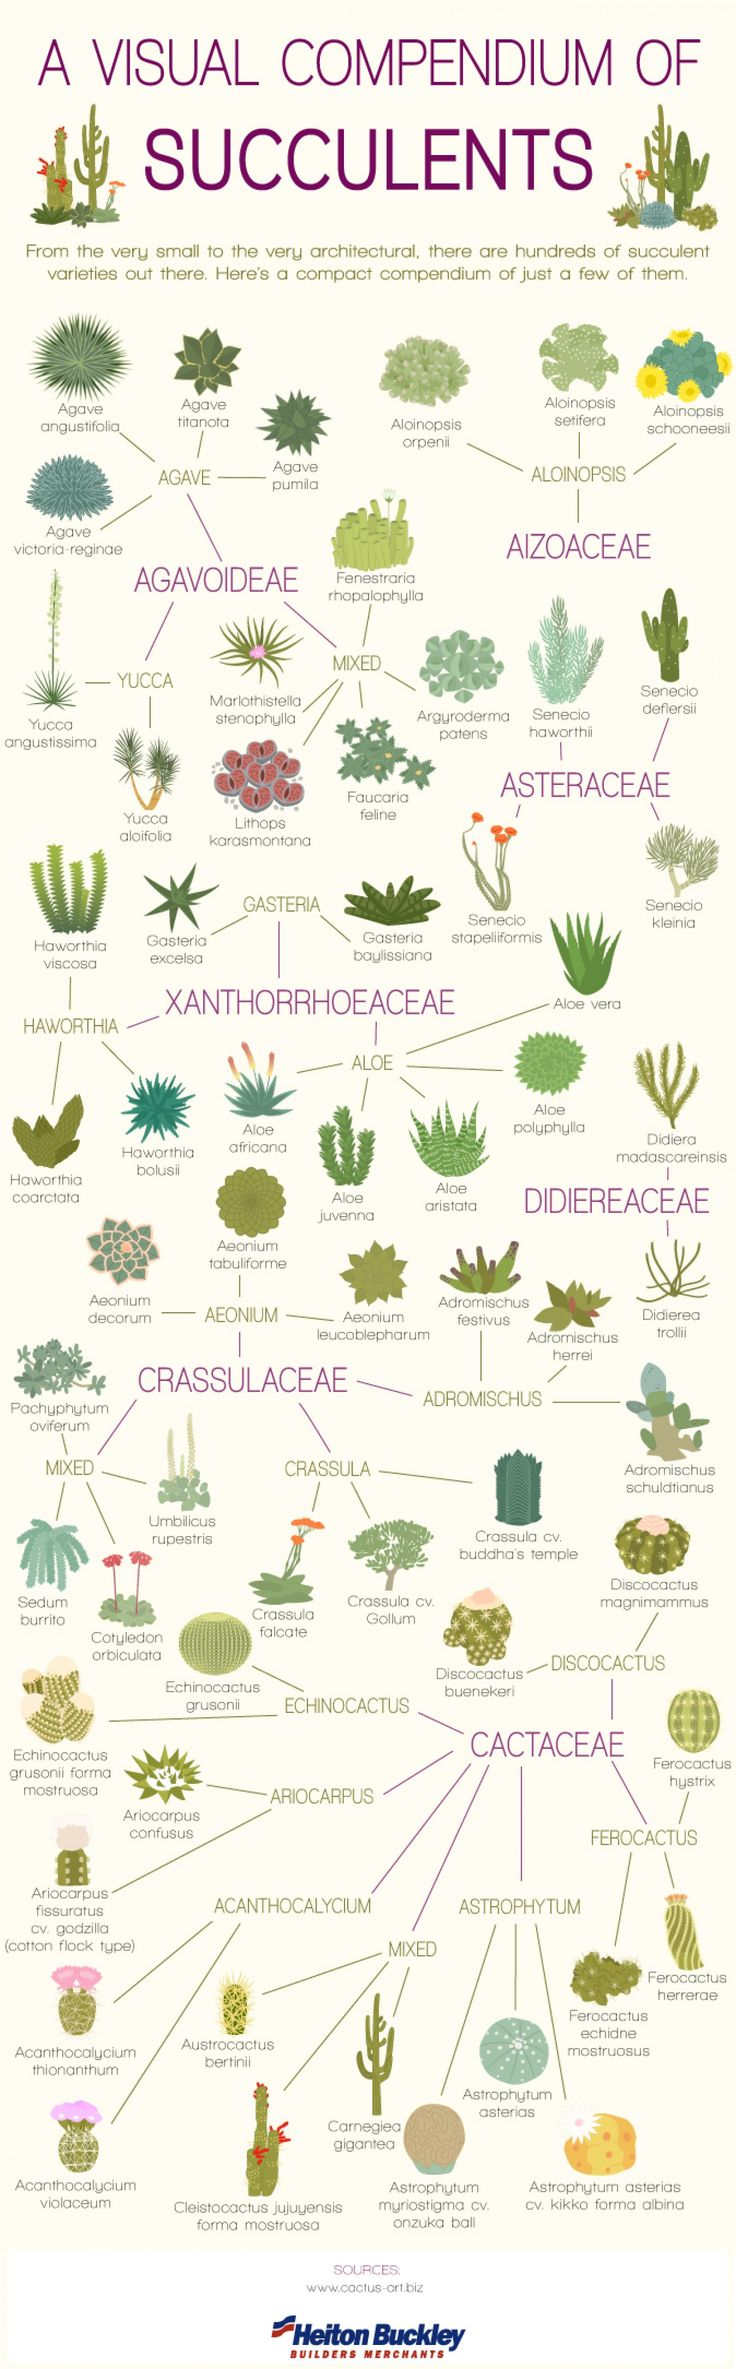 A Visual Compendium of Succulents Infographic., I've needed this for a very long time!!